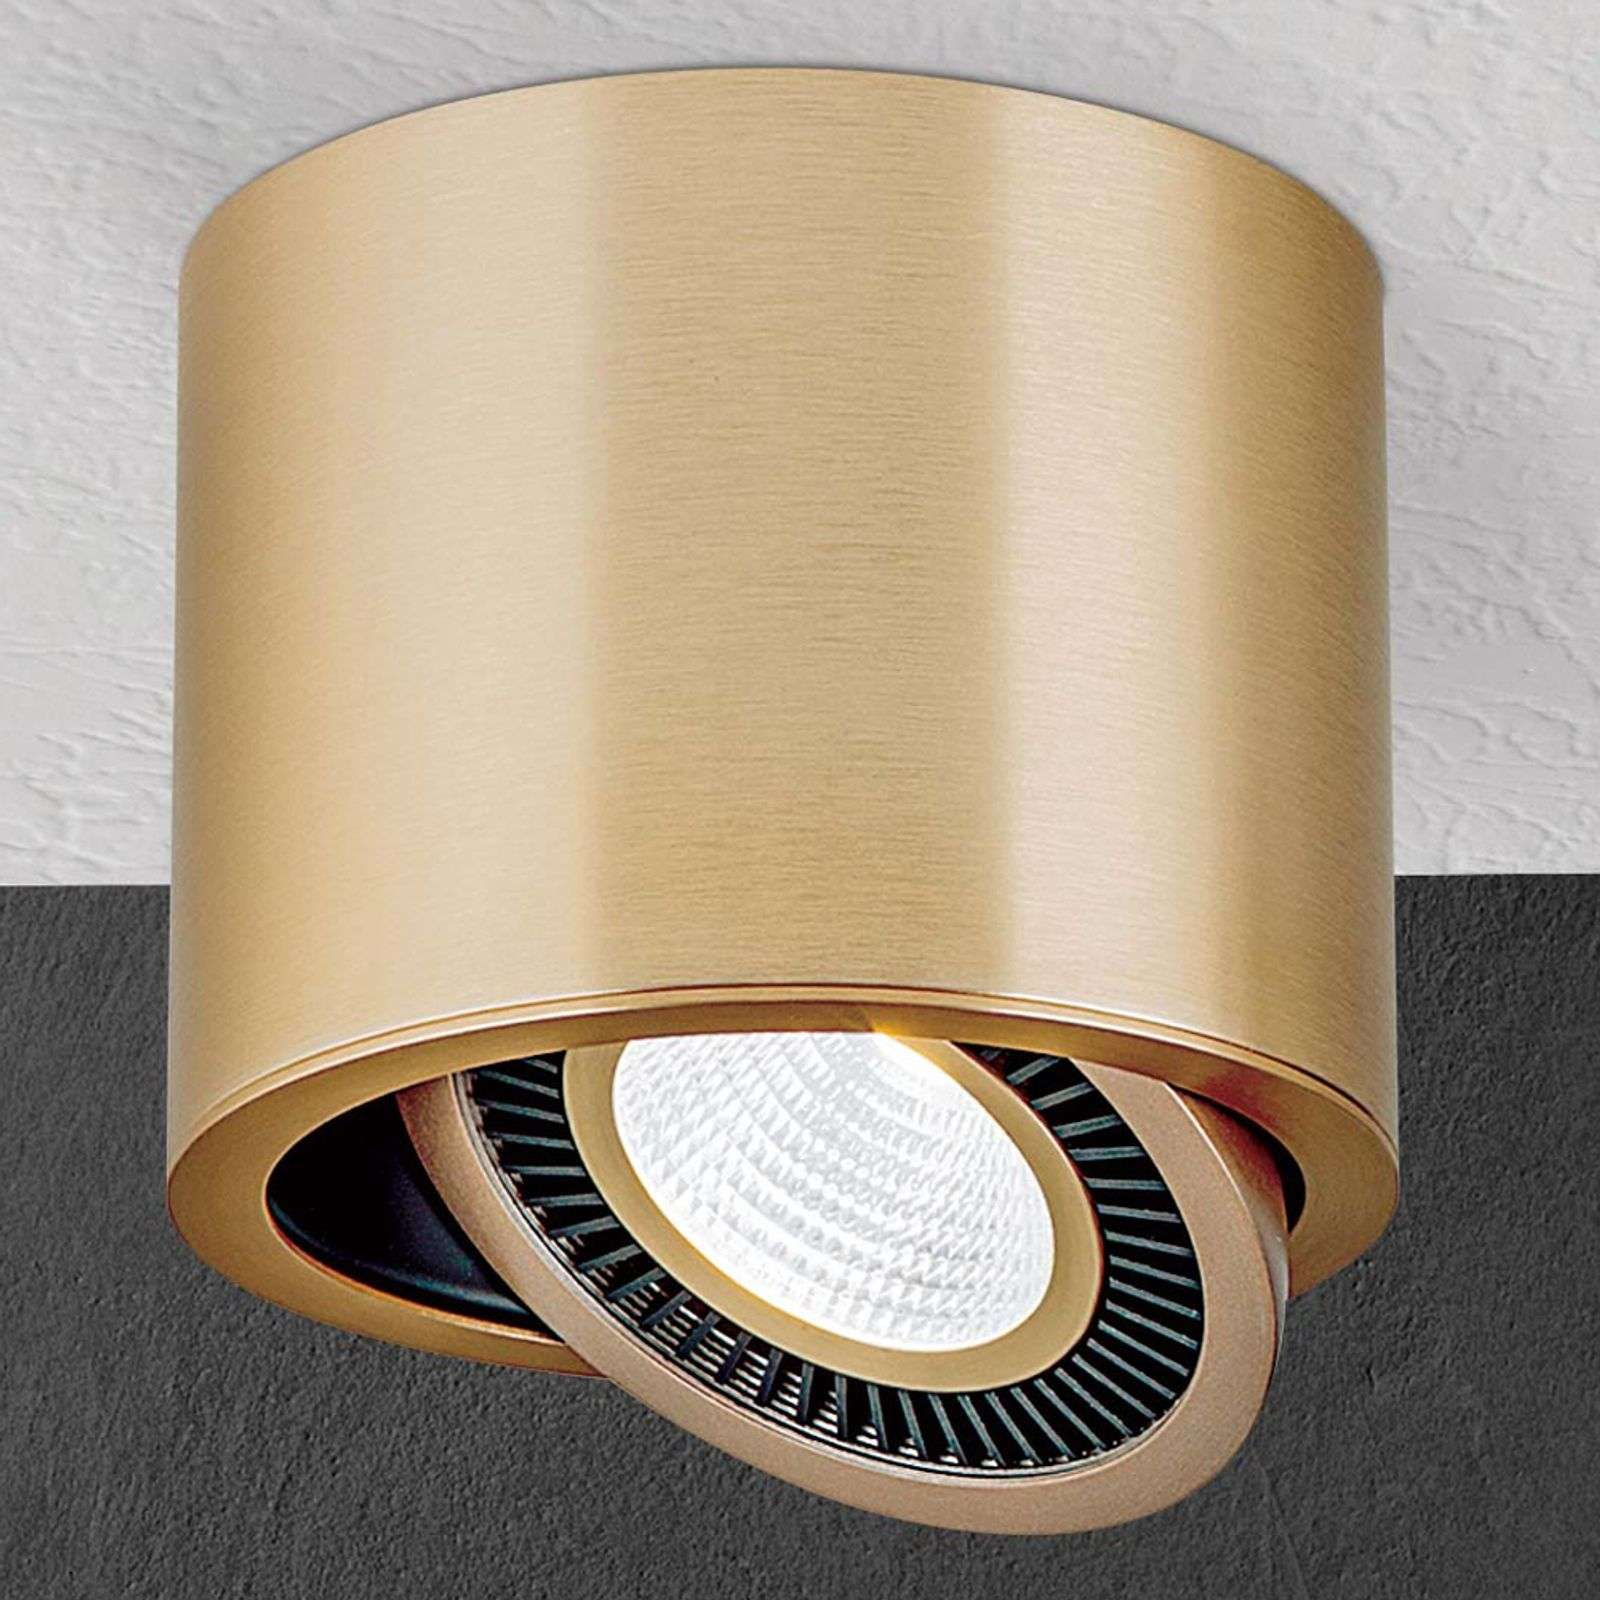 Foco LED de techo Sofya en color dorado